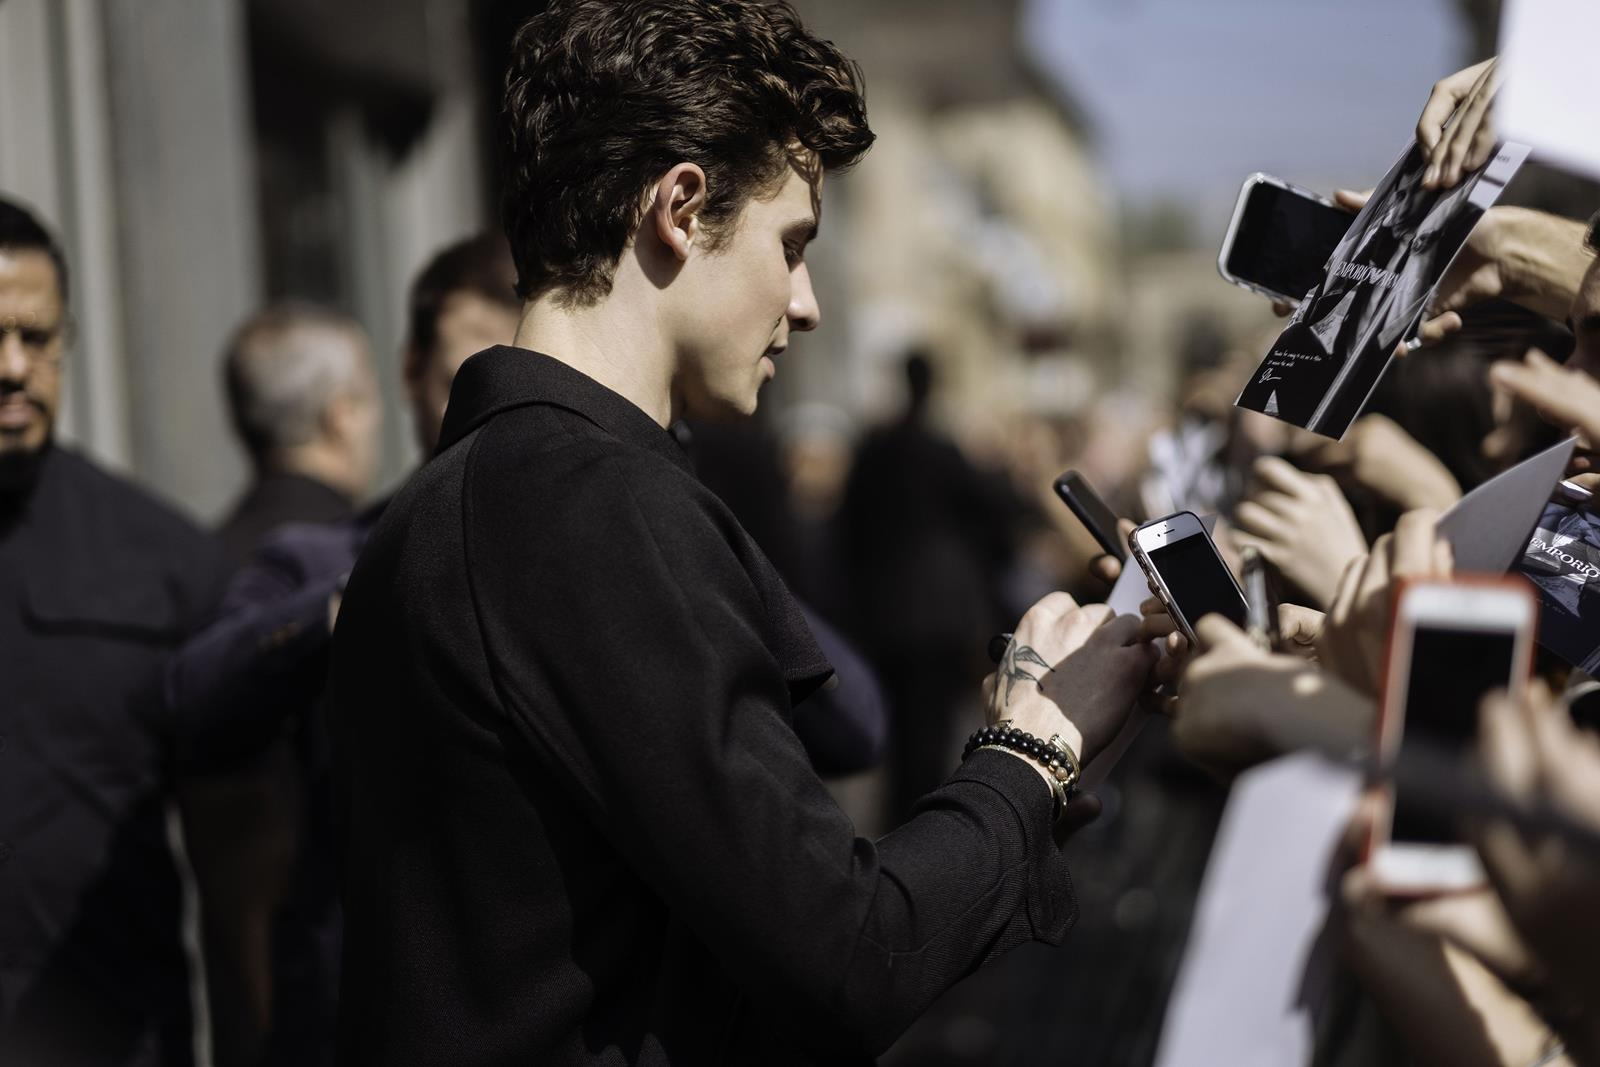 Shawn Mendes (ph: credit Lucas Possiede)